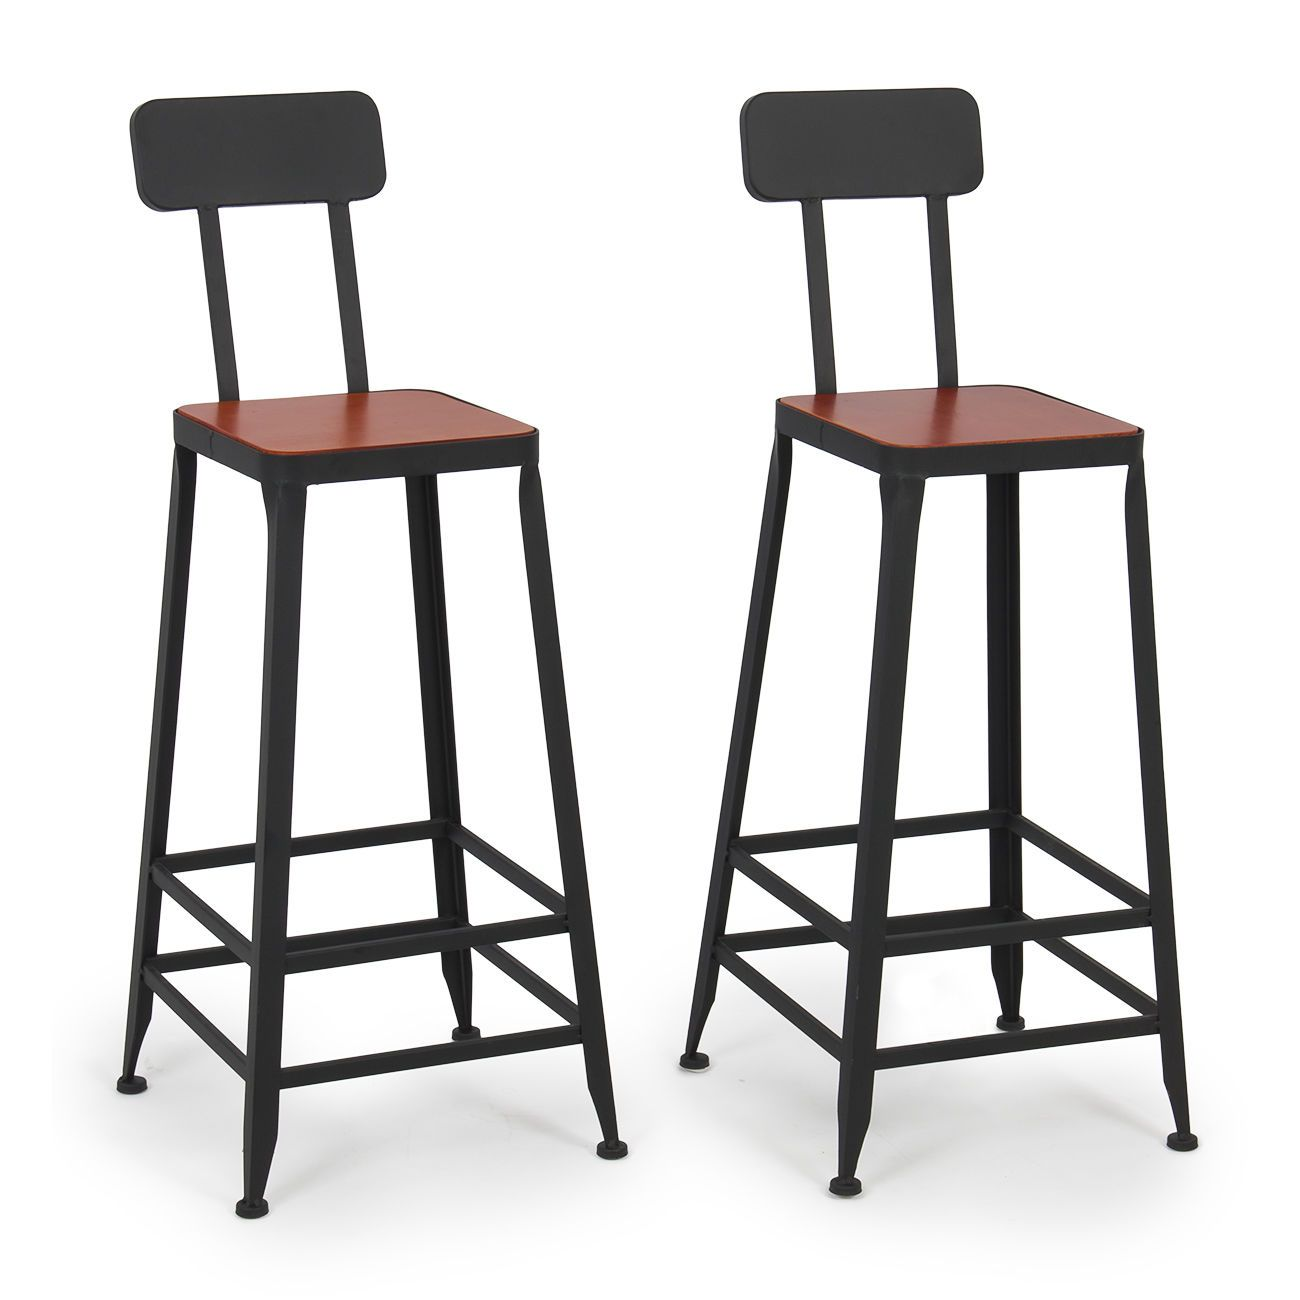 Pin By Iffah Fathin On Style: Industrial Bar Stools Barstools Wood Counter Top Height